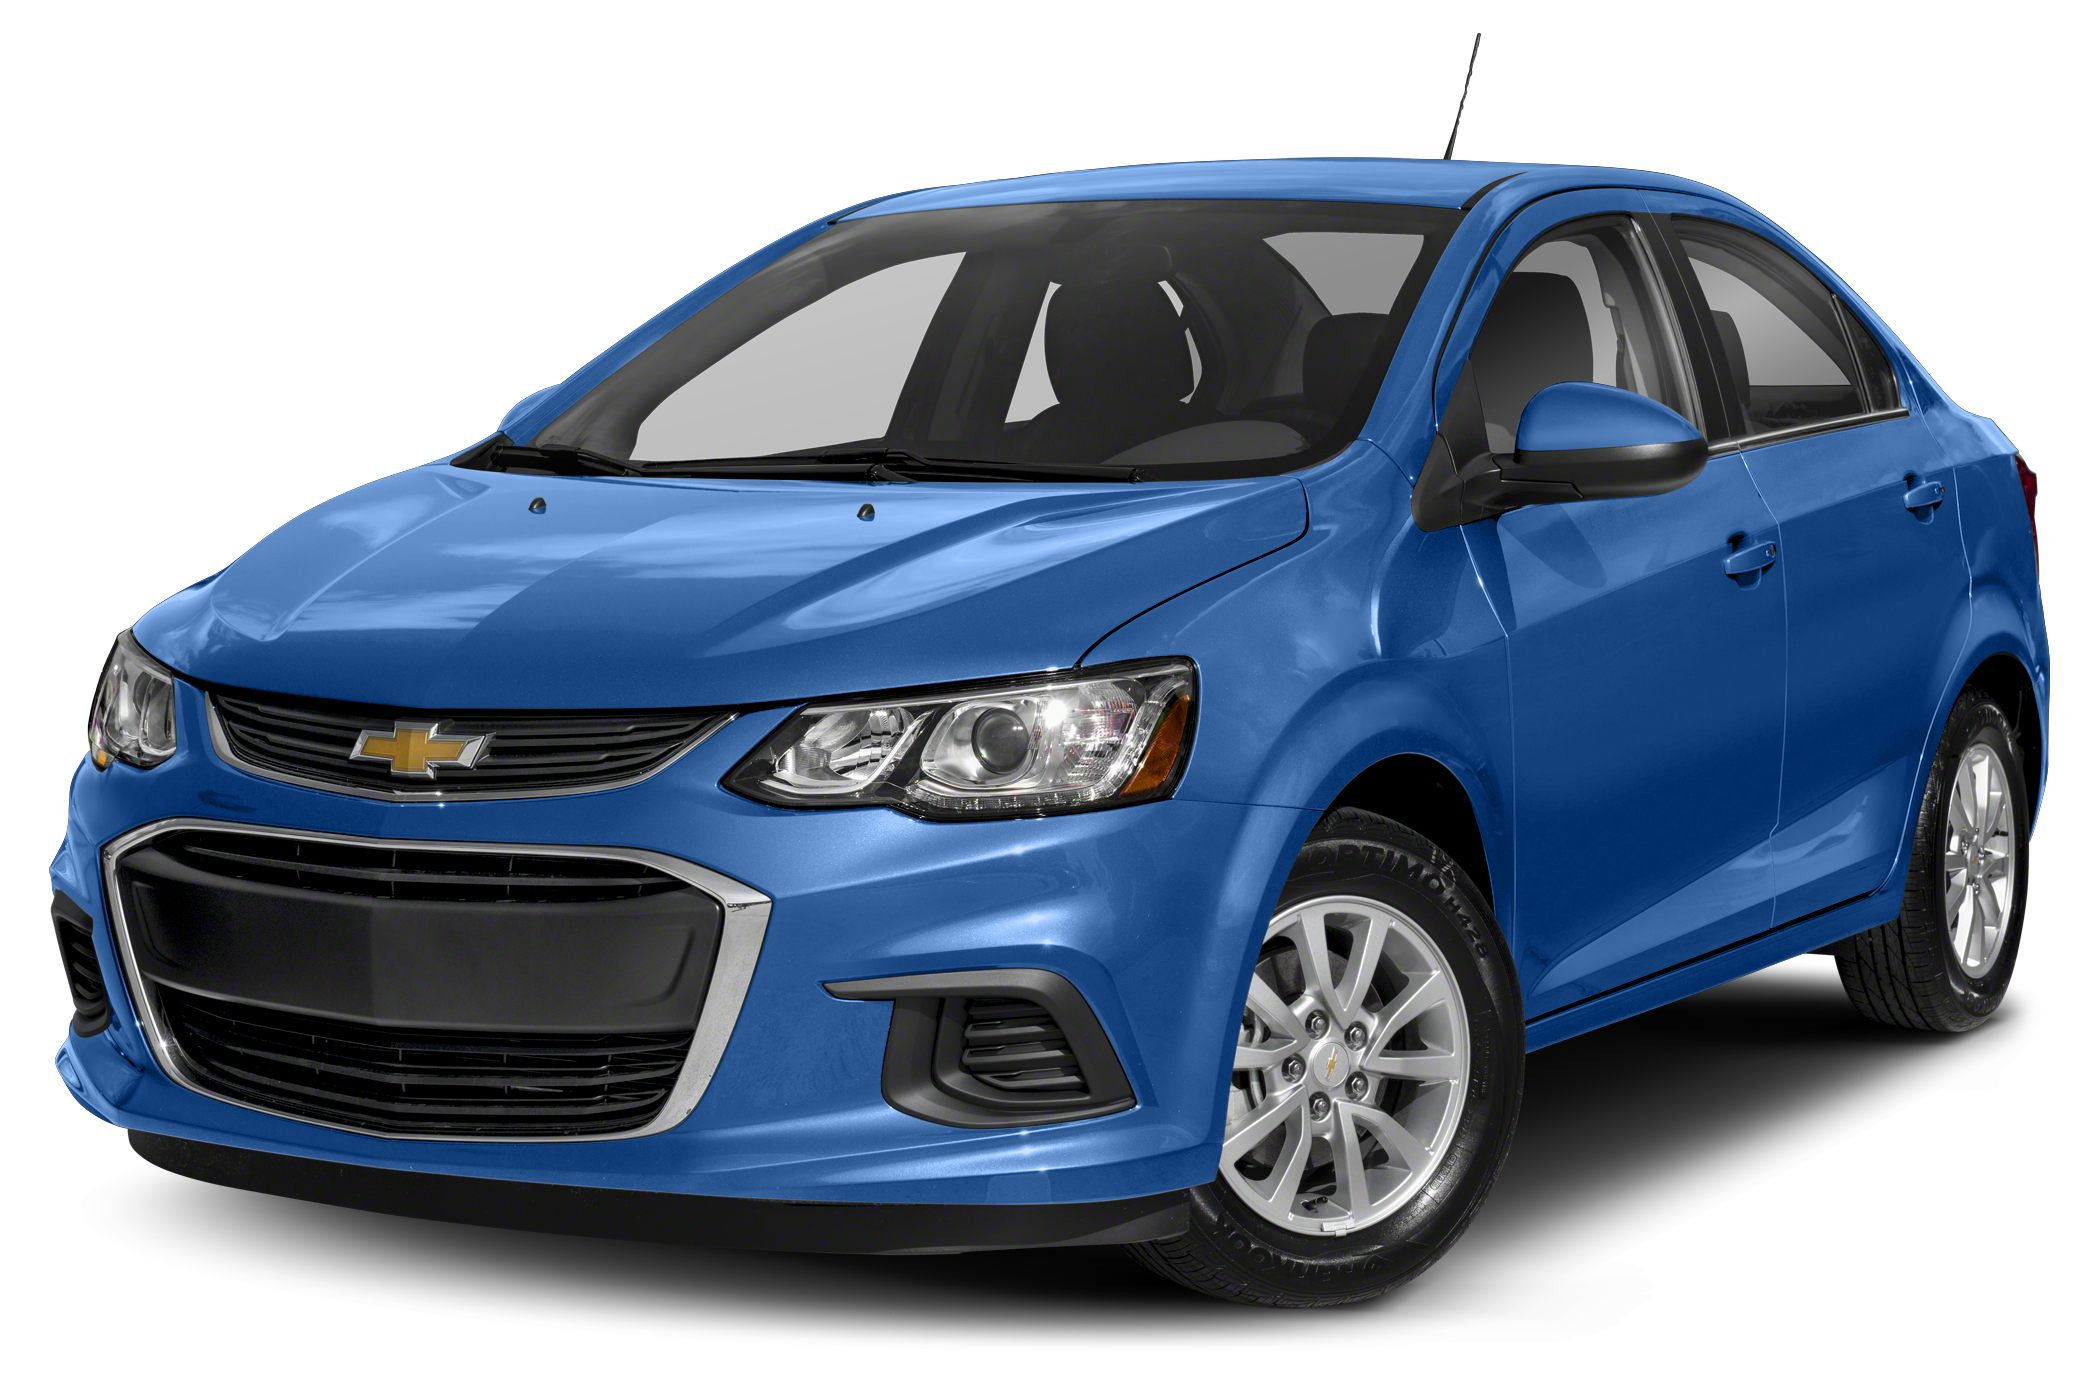 2017 chevrolet sonic gets camaro inspired facelift for ny debut autoblog. Black Bedroom Furniture Sets. Home Design Ideas